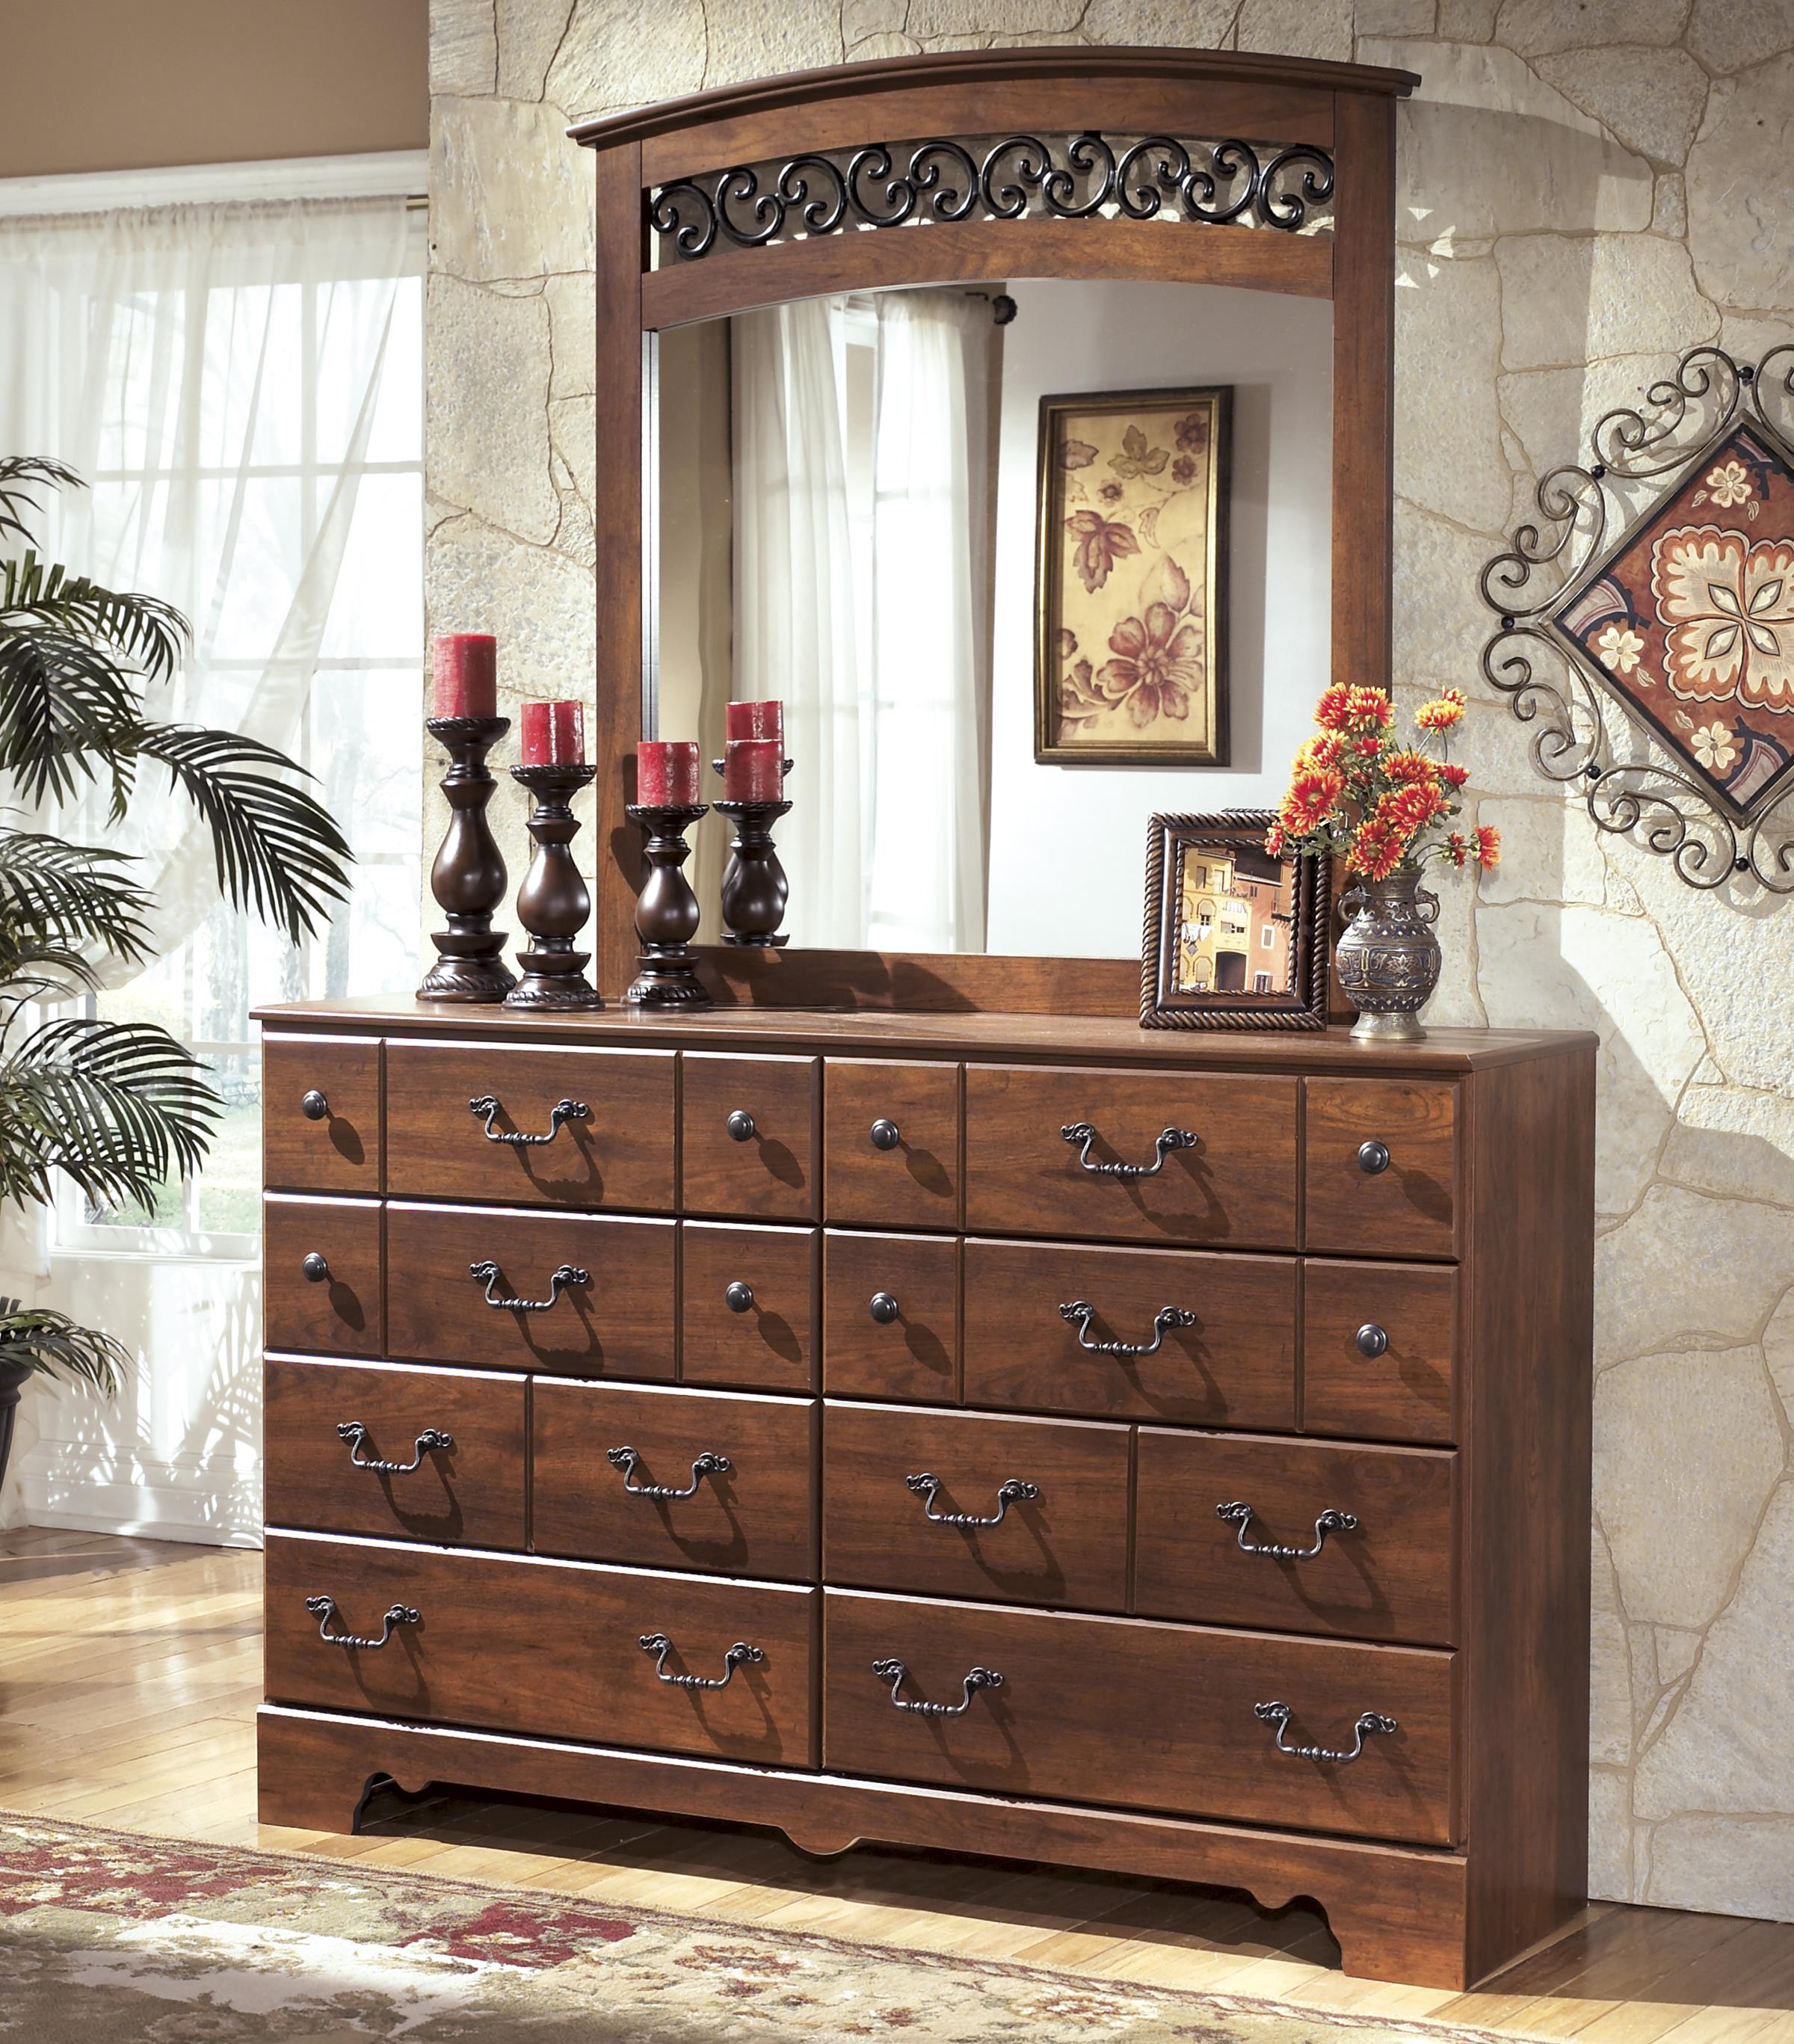 Signature Design by Ashley Timberline 8 Drawer Dresser and Mirror Set - Item Number: B258-31+36